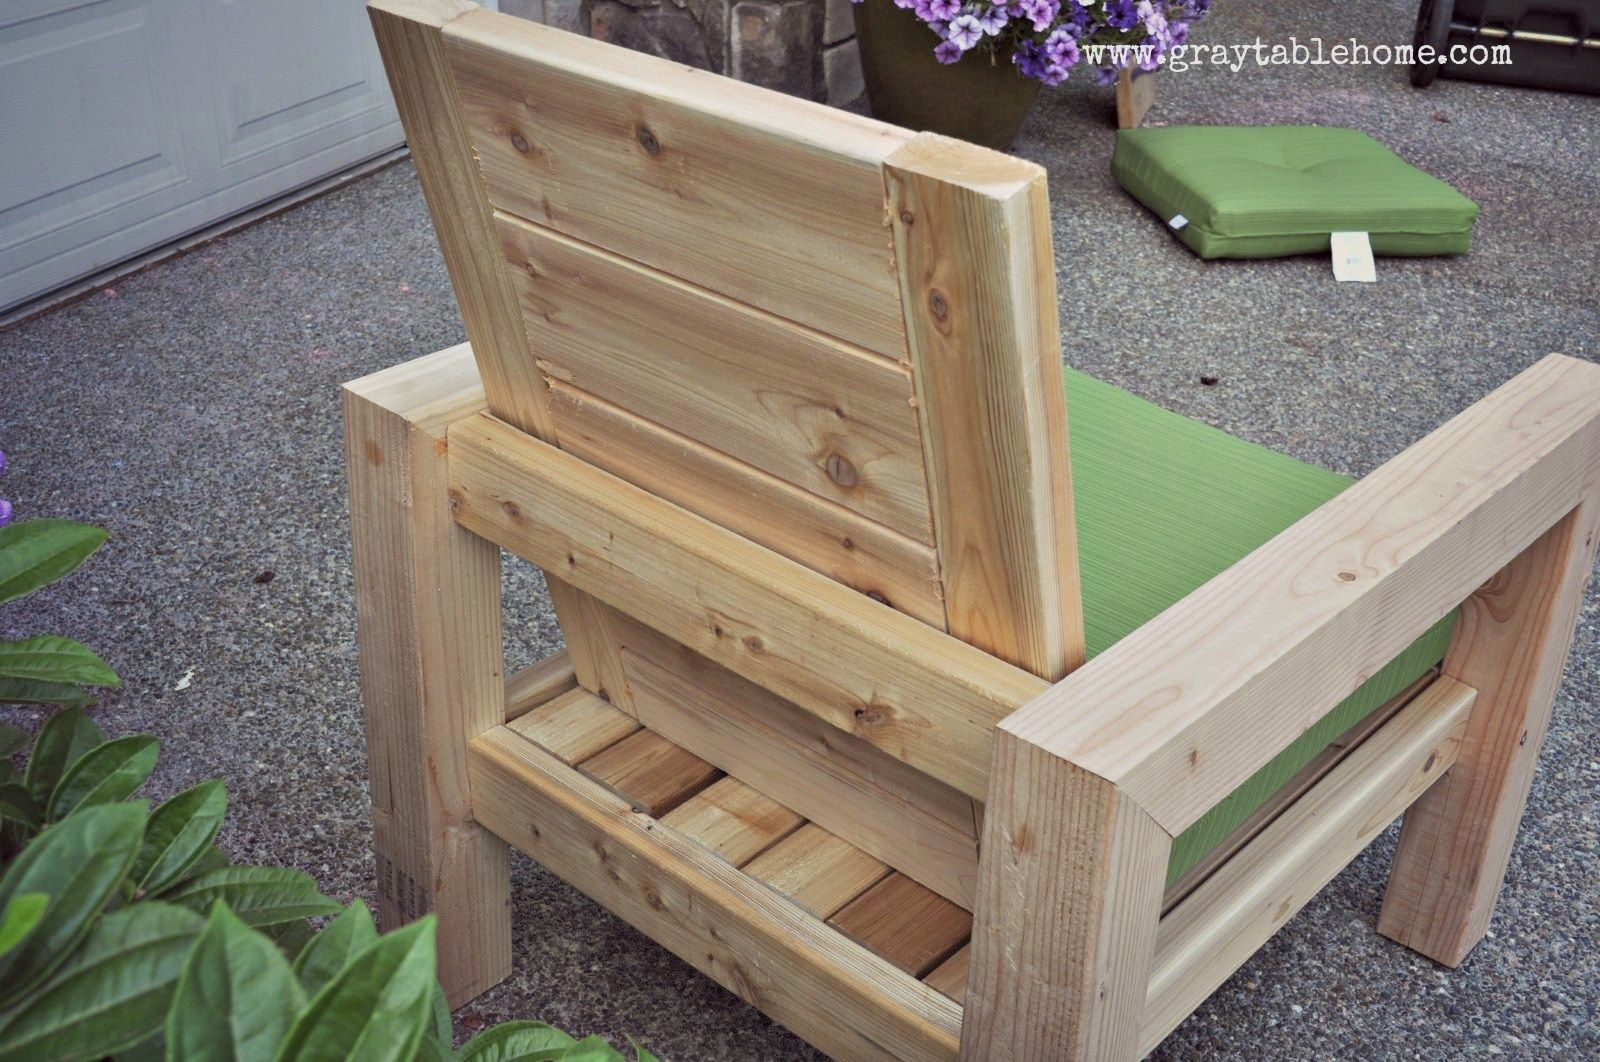 Diy Modern Rustic Outdoor Chair Plans